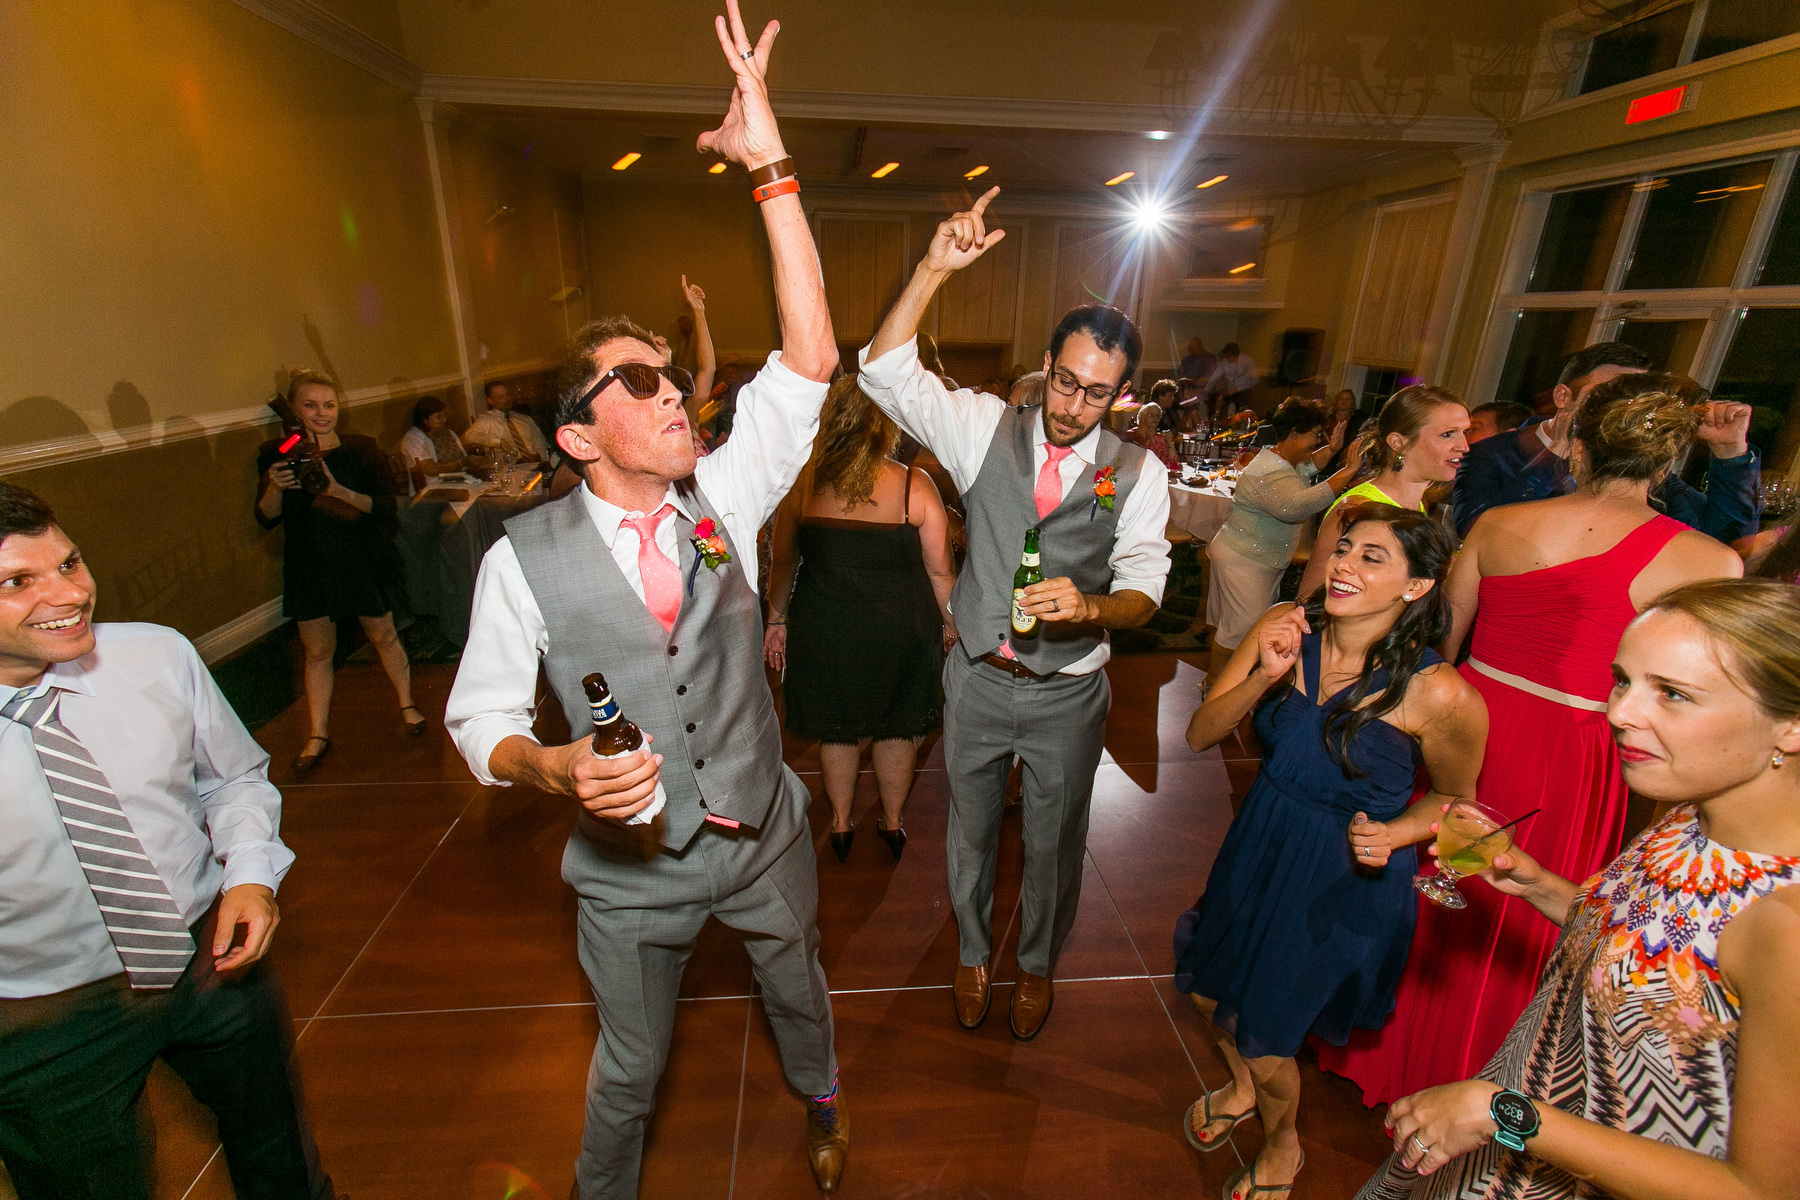 Guests dance during a wedding at The Piedmont Club in Haymarket, Va